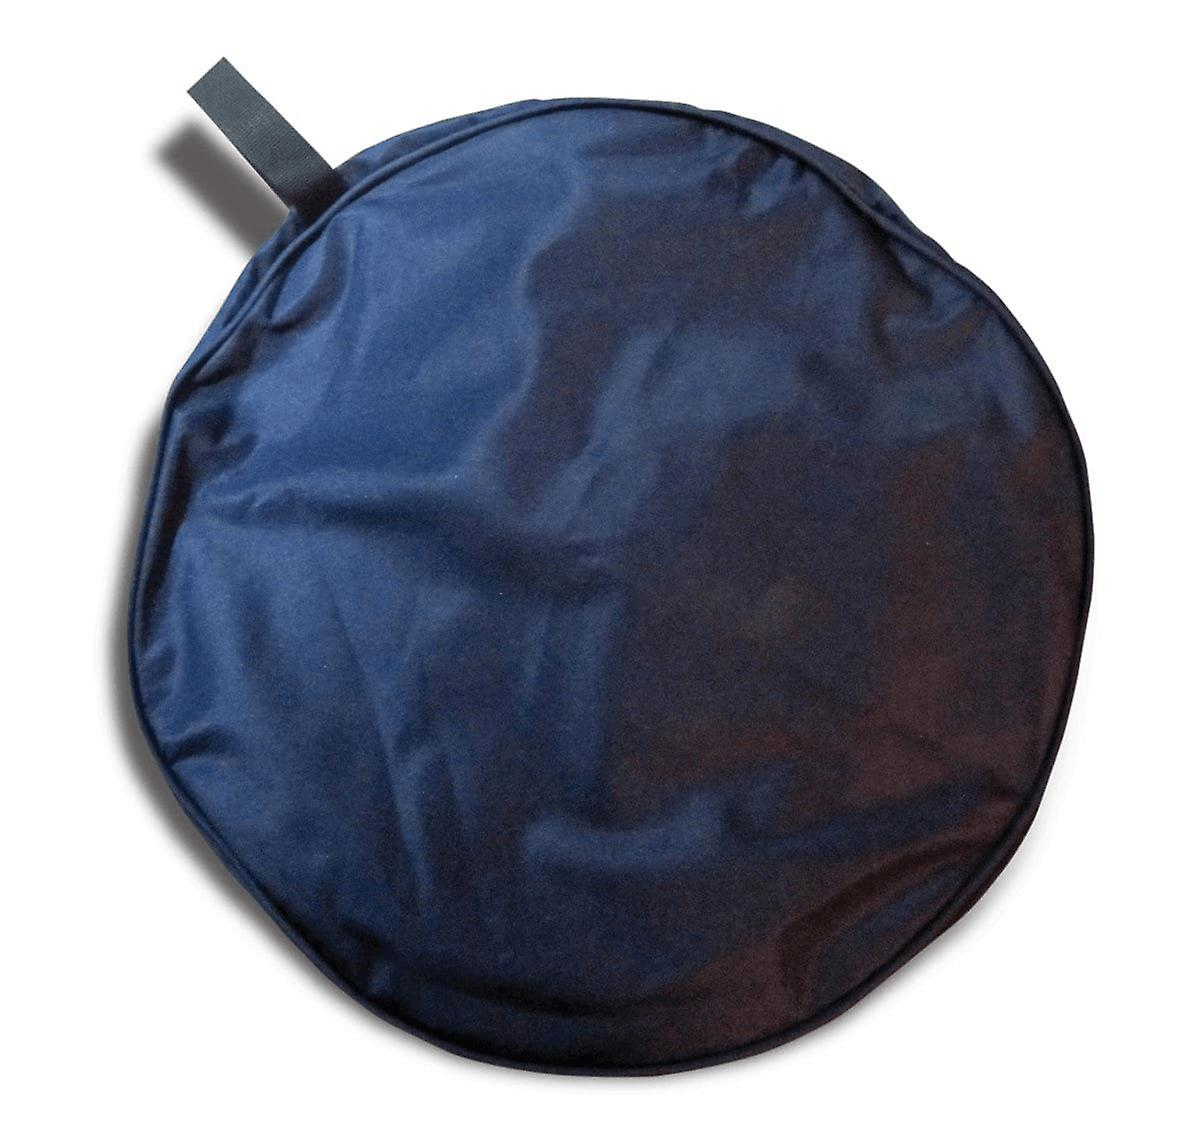 OLPRO Mains Lead Storage Bag For Holding Up to 25m of Cable Zip 420D Nylon